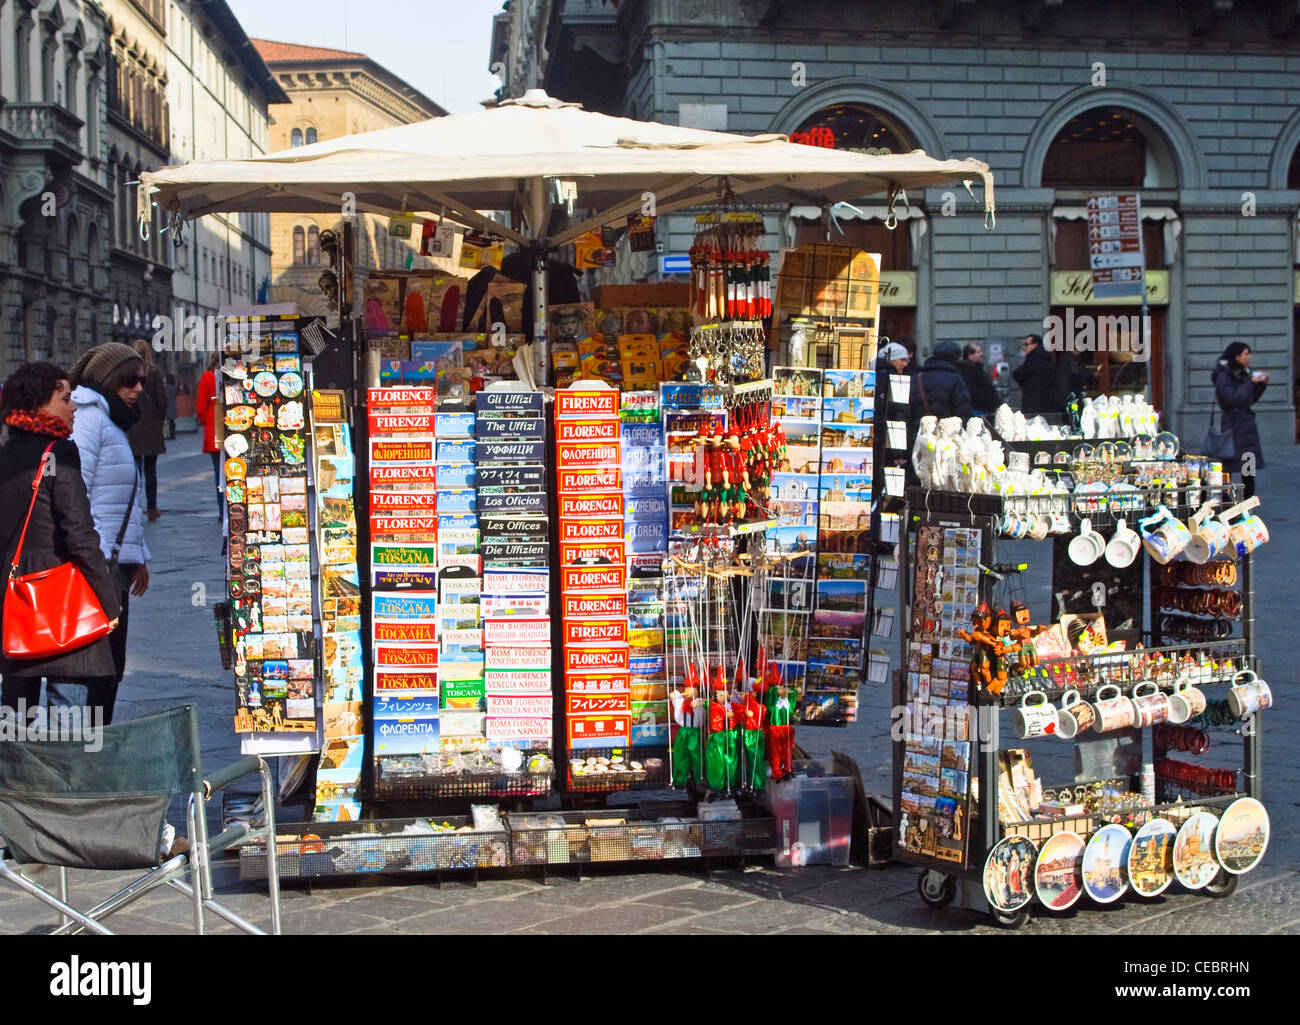 A stall selling Guide Books and souvenirs in the Piazza San Giovanni, Florence, Italy - Stock Image